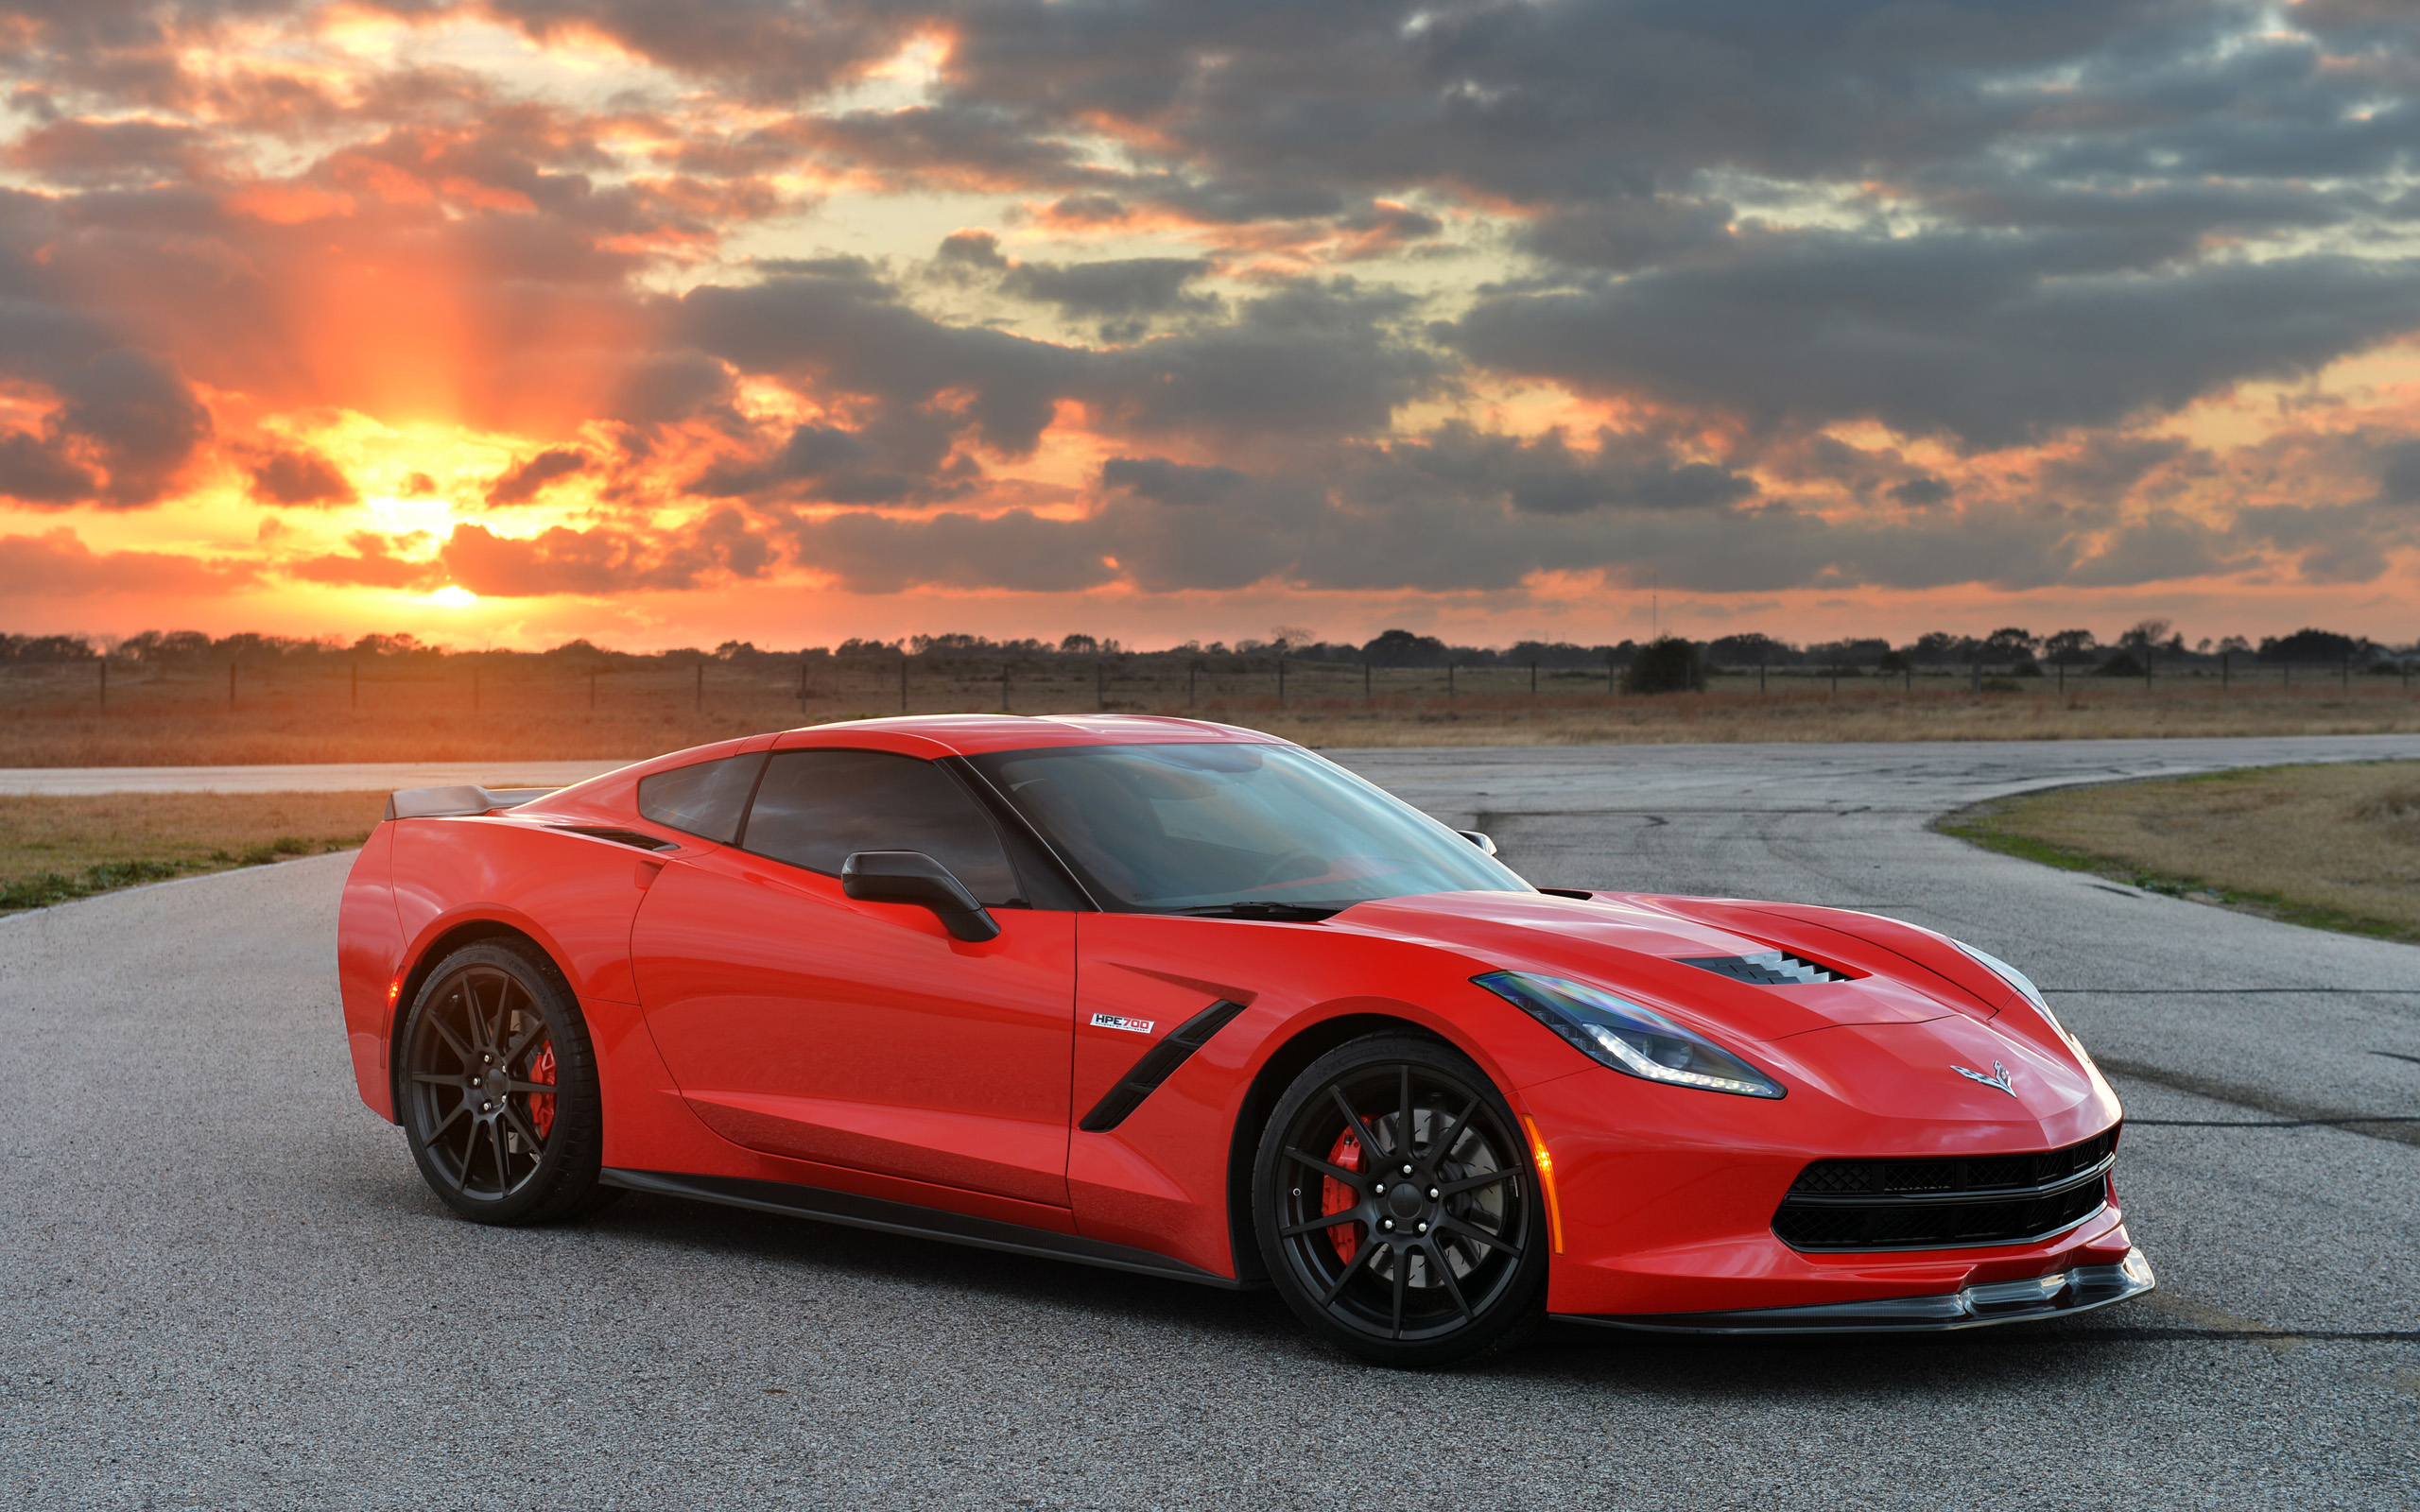 Pics Photos - 2014 Chevrolet Corvette Stingray Black Hd Wallpaper 2014 ...